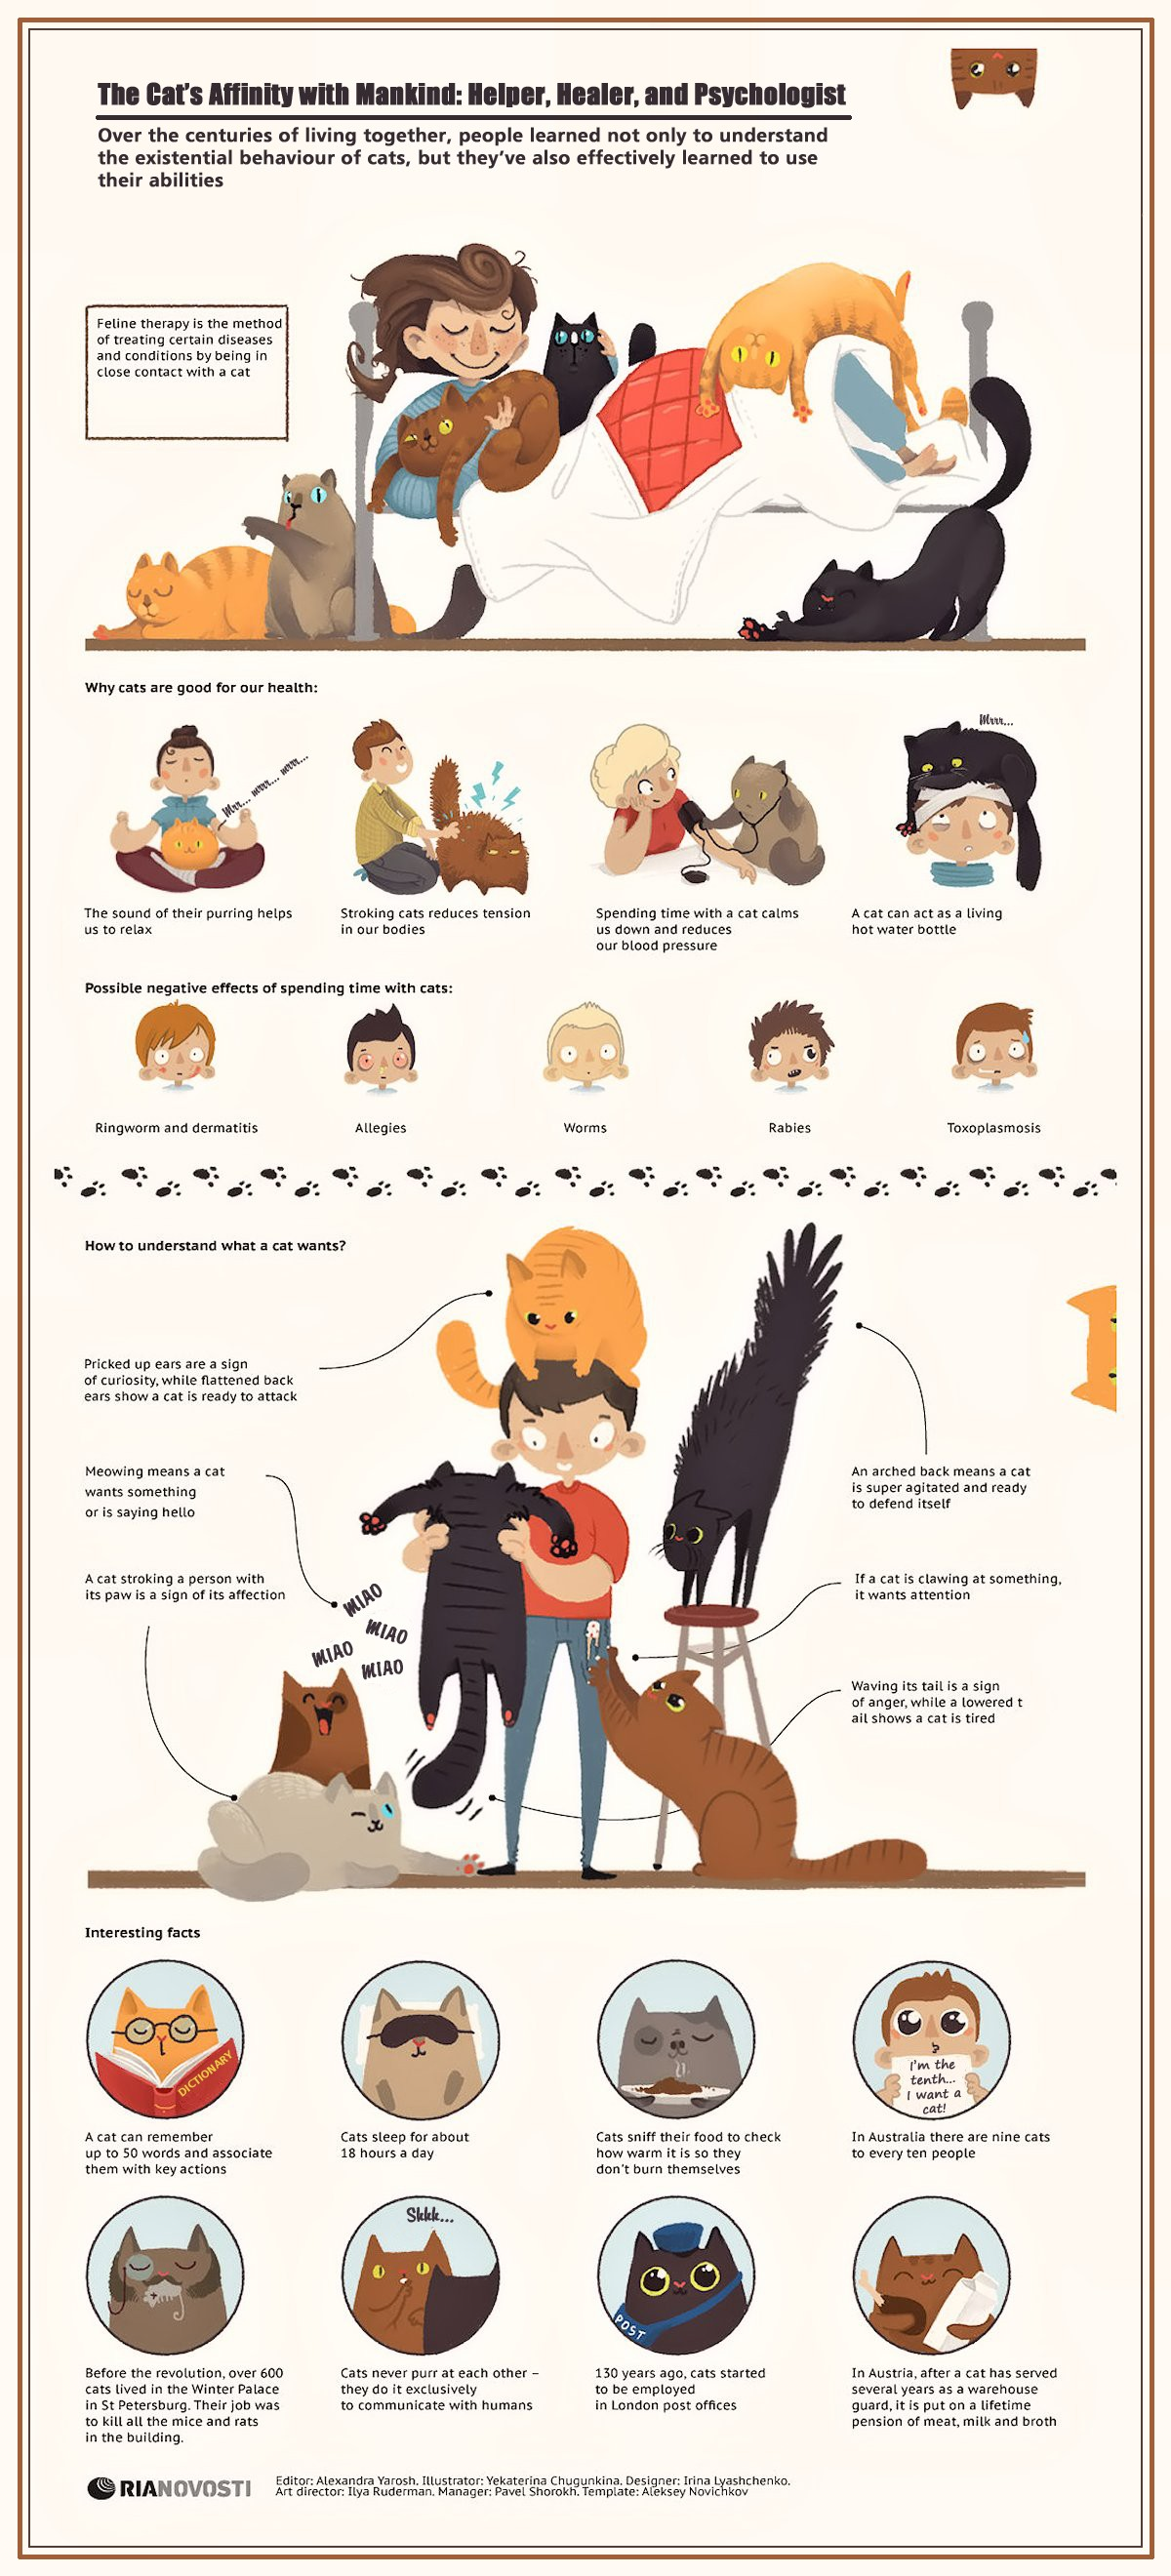 00 RIA-Novosti Infographics. The Cat's Affinity with Mankind. Helper, Healer, and Psychologist